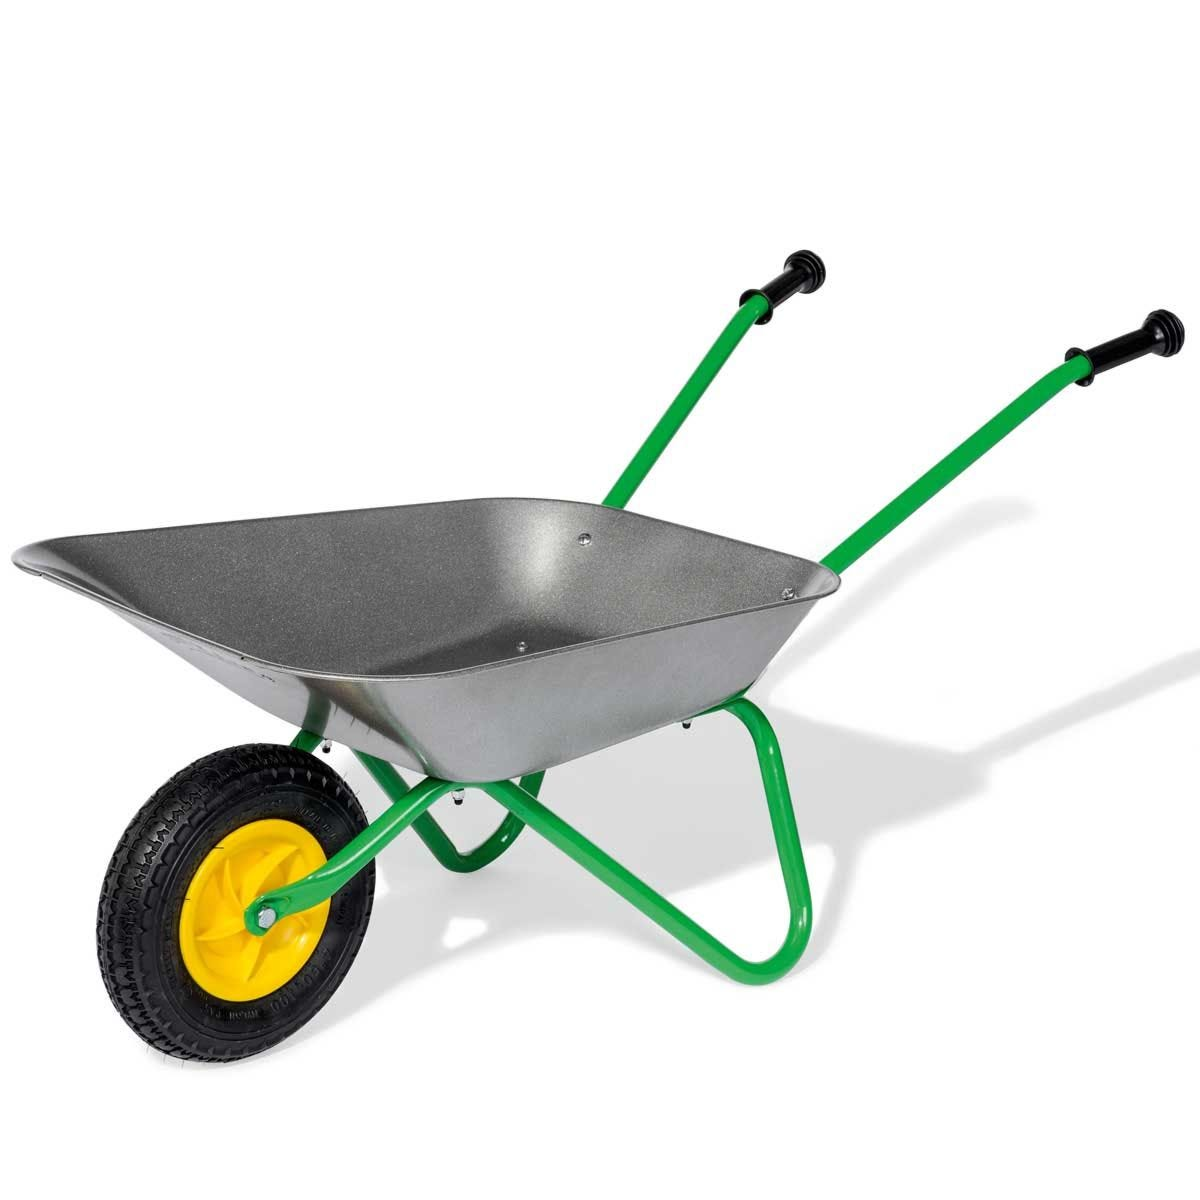 Kid's Wheelbarrow with Front Pneumatic Tyre - Silver/Green